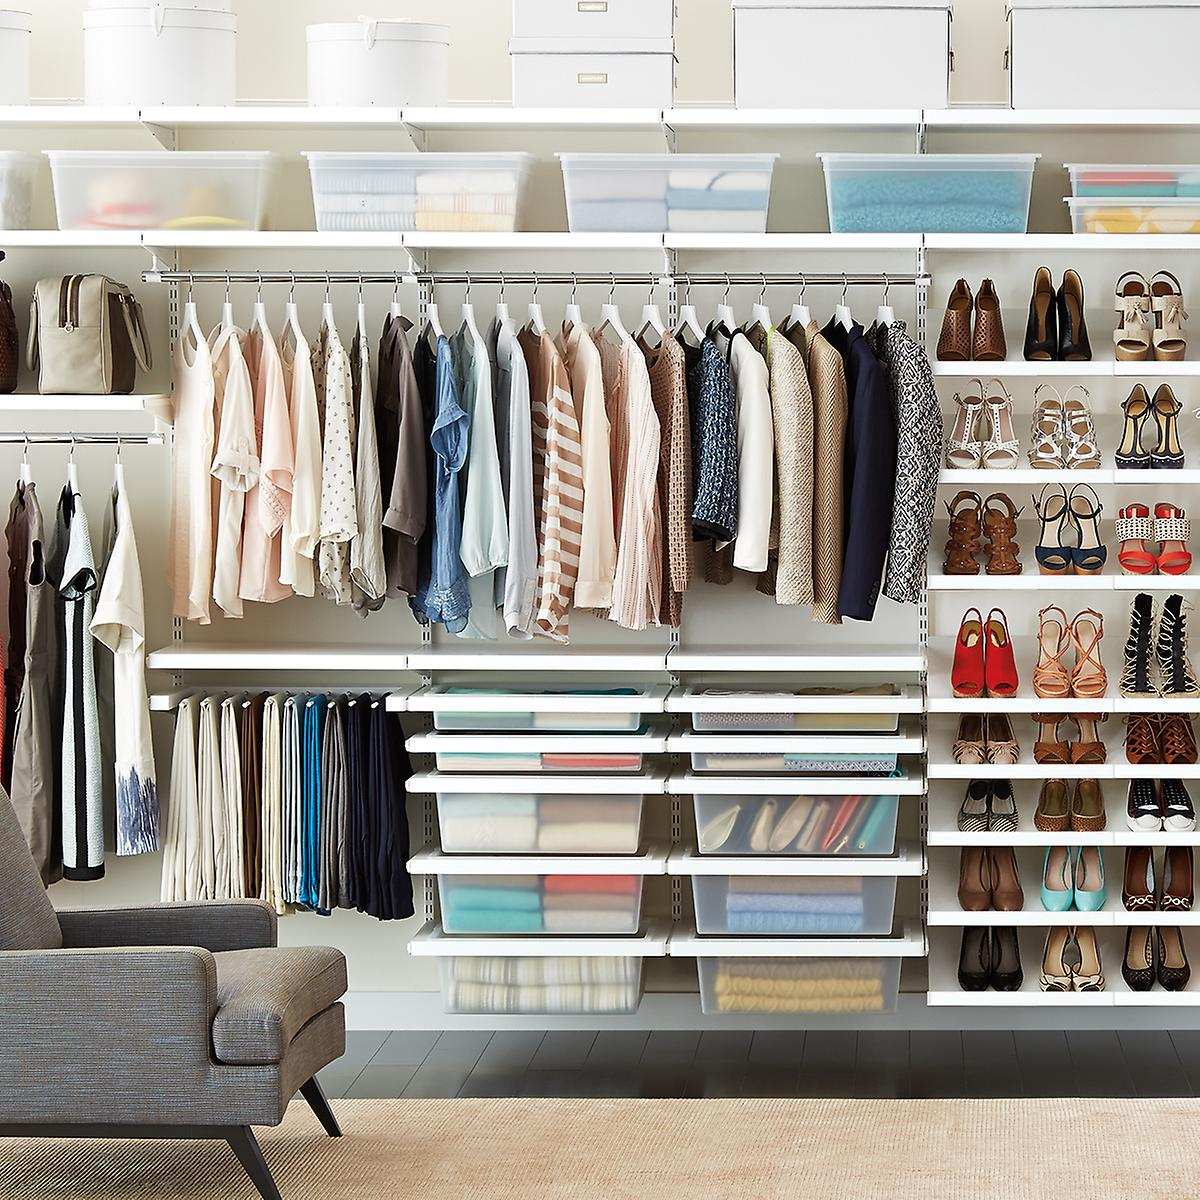 Create your own custom closet system and shelving with Elfa - build a plan online, visit an in-store expert, or pick out the components yourself! Get free shipping over $75 + free in-store pickup everyday.